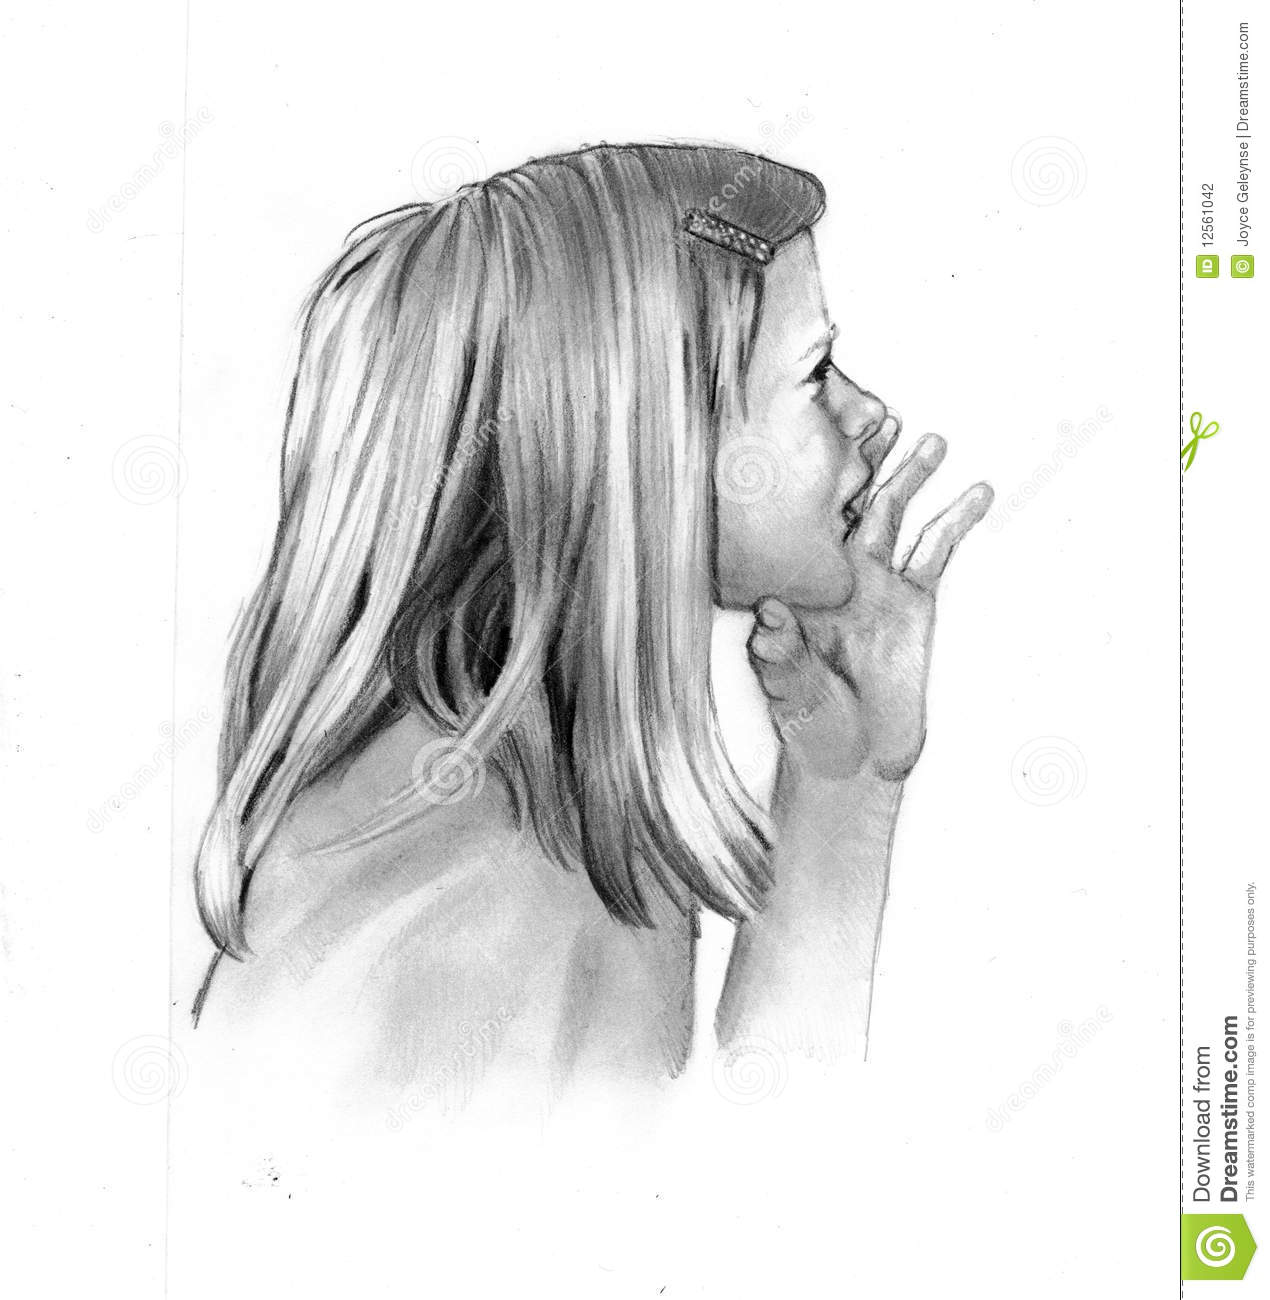 Pencil drawing of little girl calling or whisperin